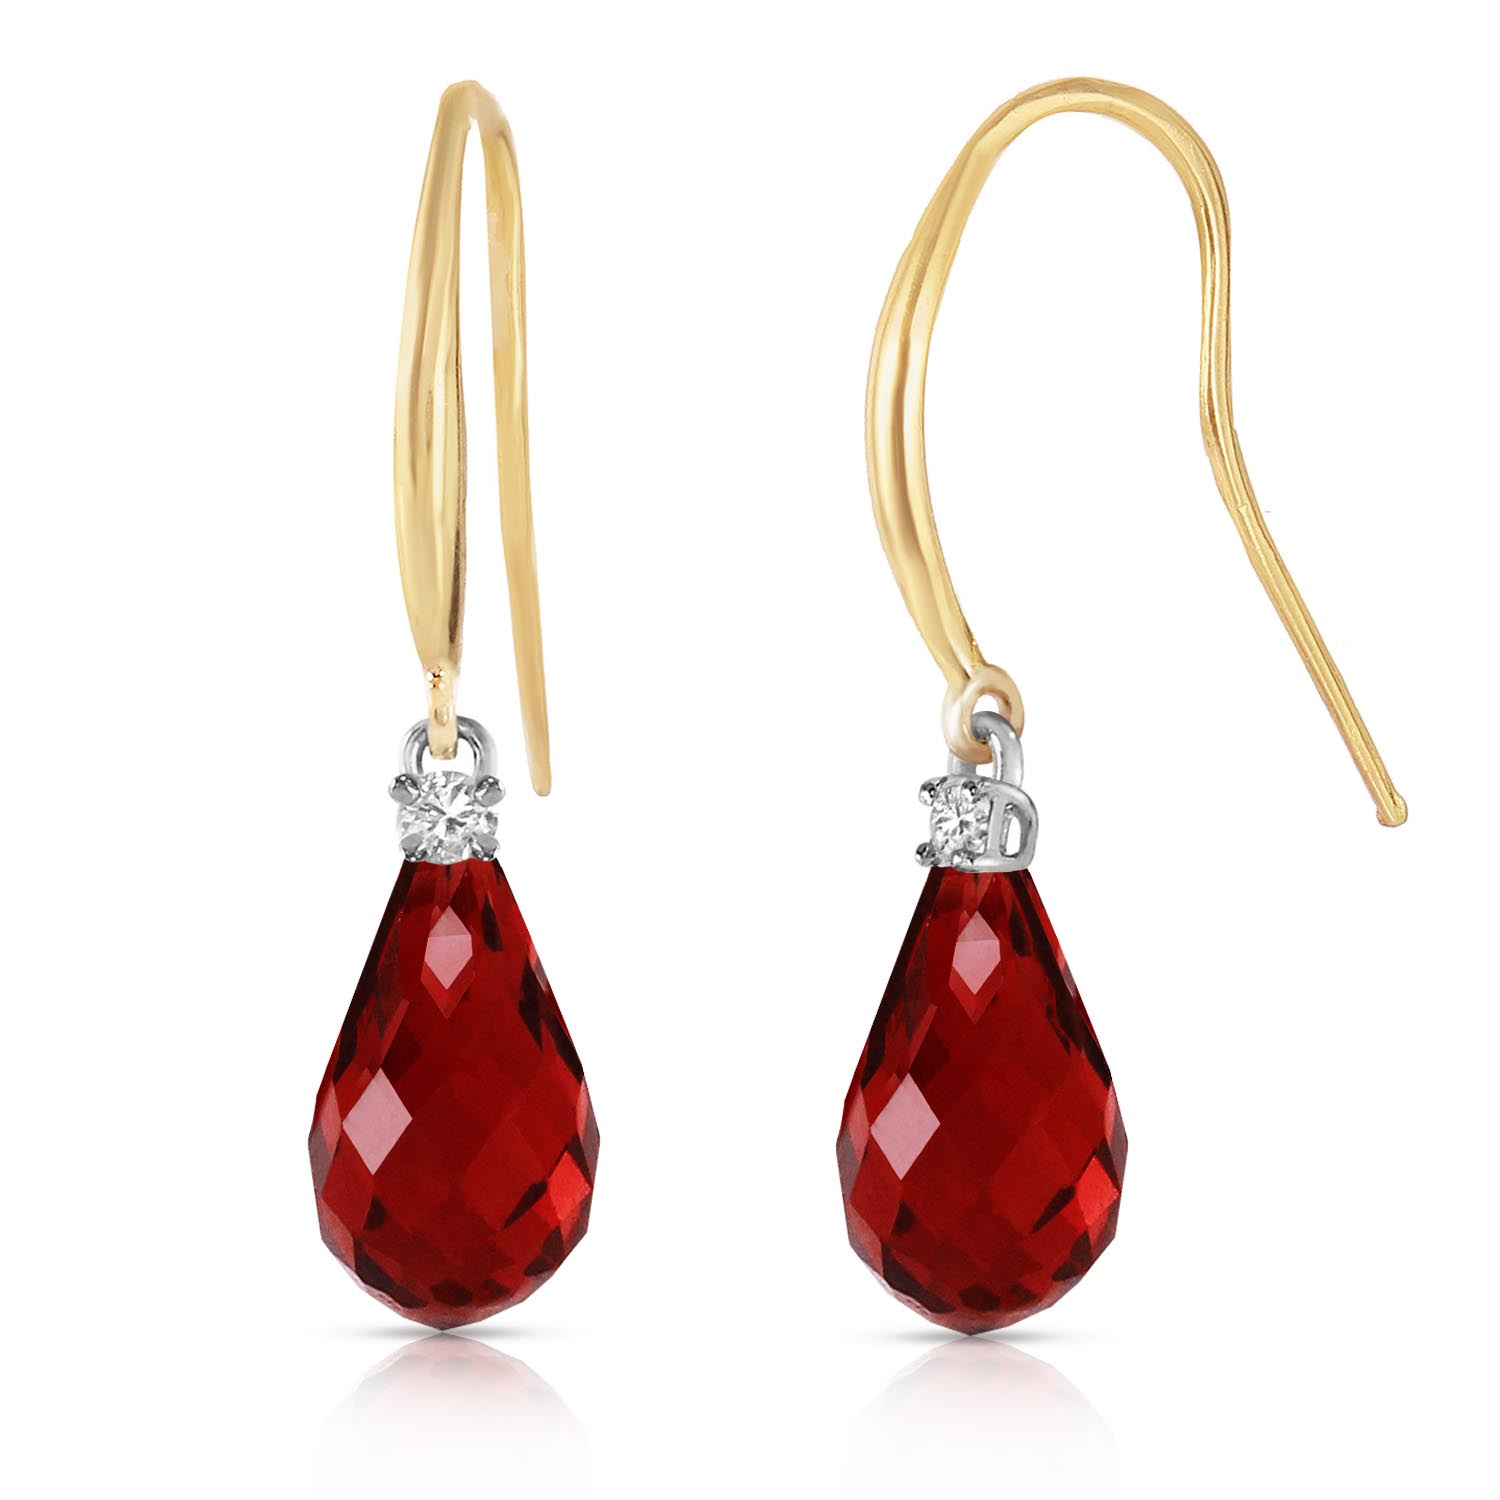 Garnet and Diamond Drop Earrings 4.5ctw in 9ct Gold